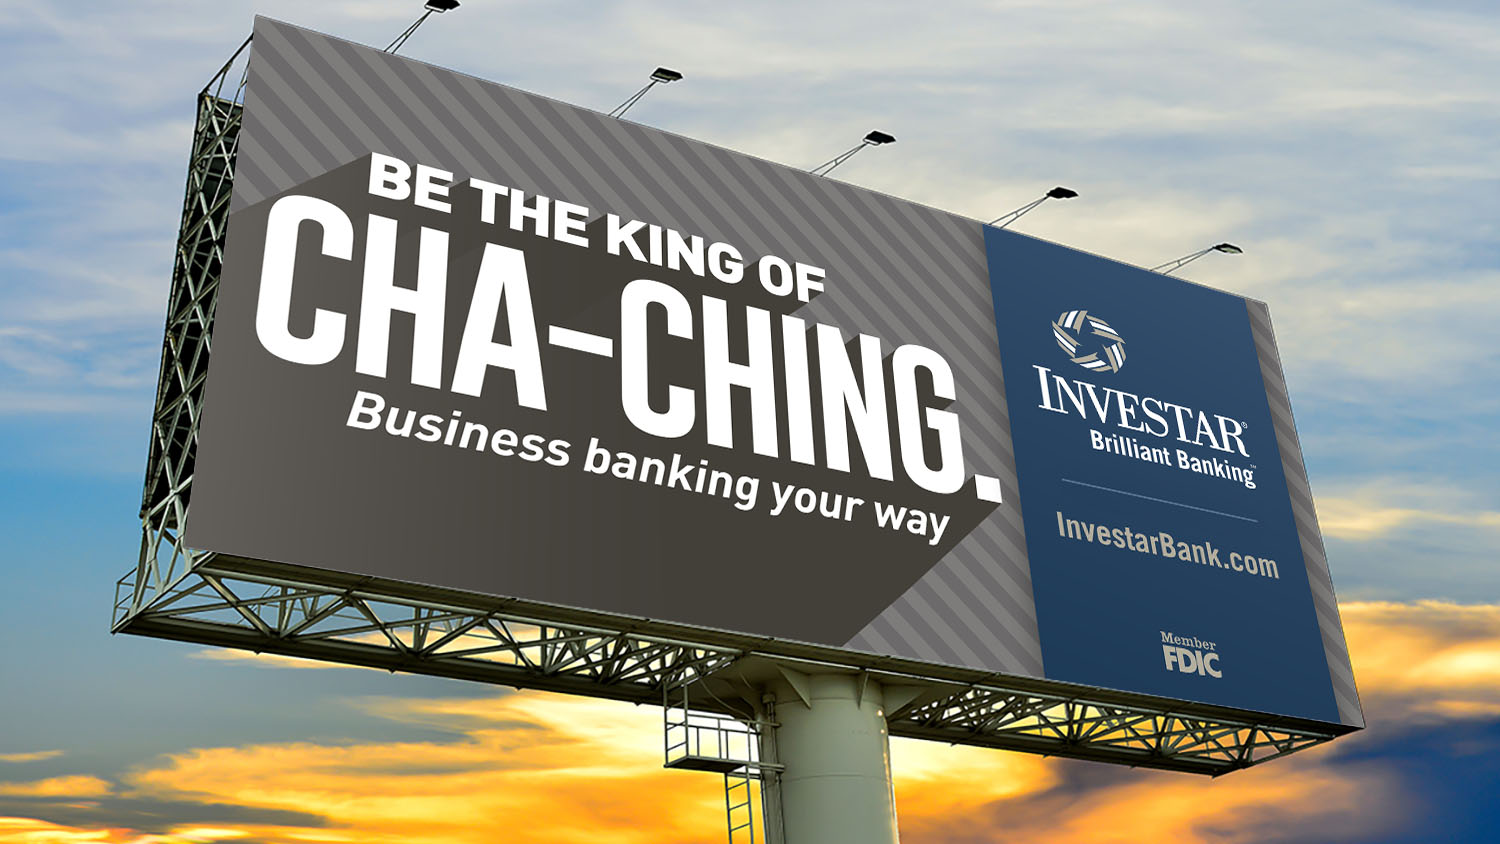 Investar | 2017 Billboard: King of Cha-Ching